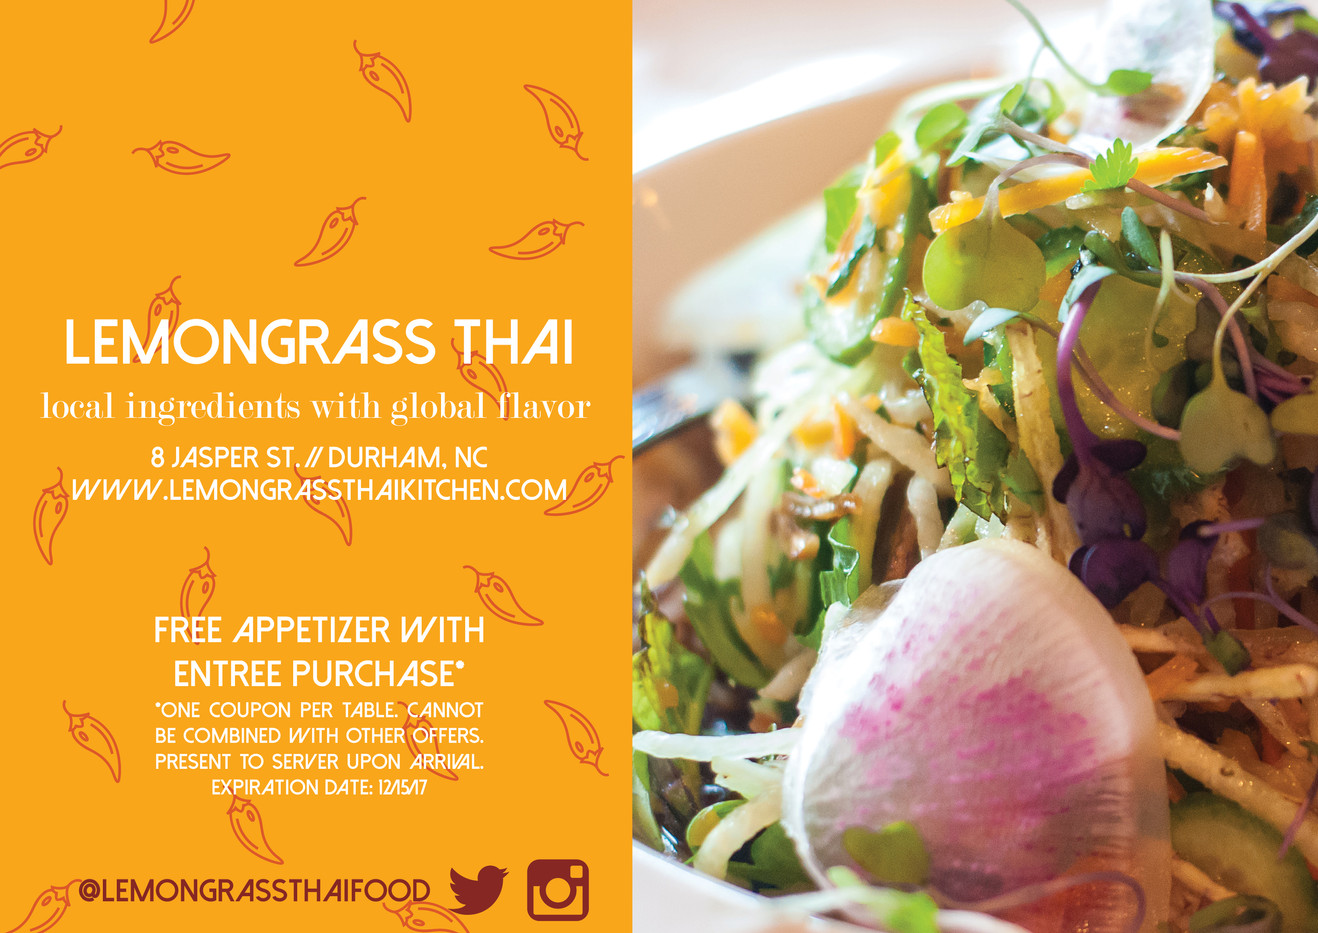 Lemongrass Thai Ad